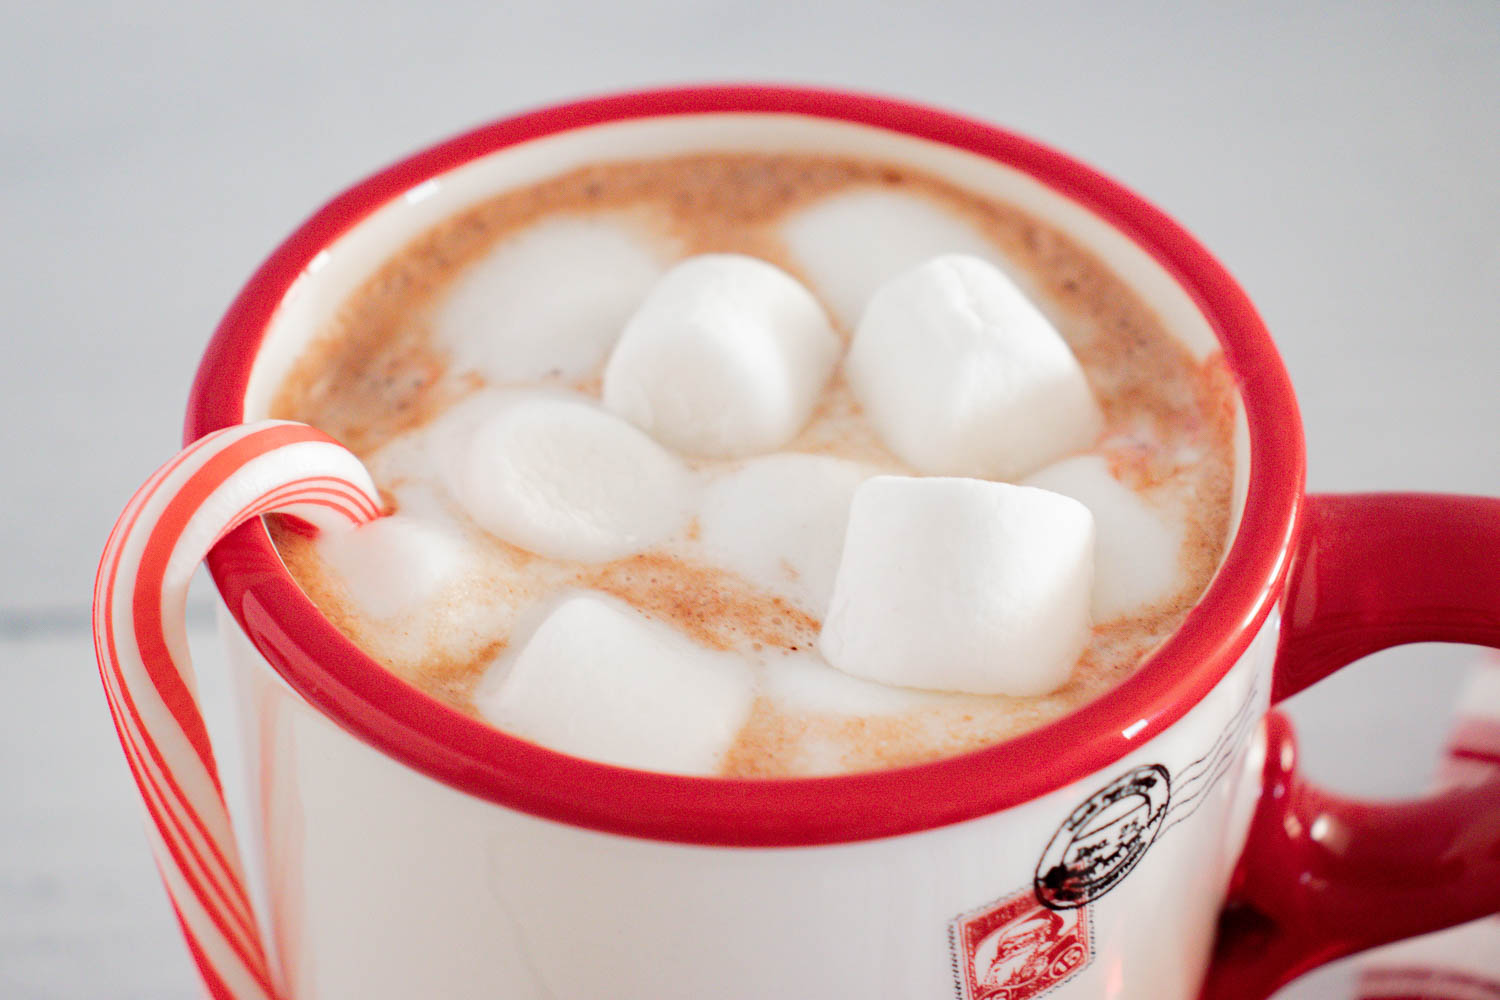 A white cup with a red rim filled with hot chocolate with marshmallows inside with a candy cane hanging off the side.